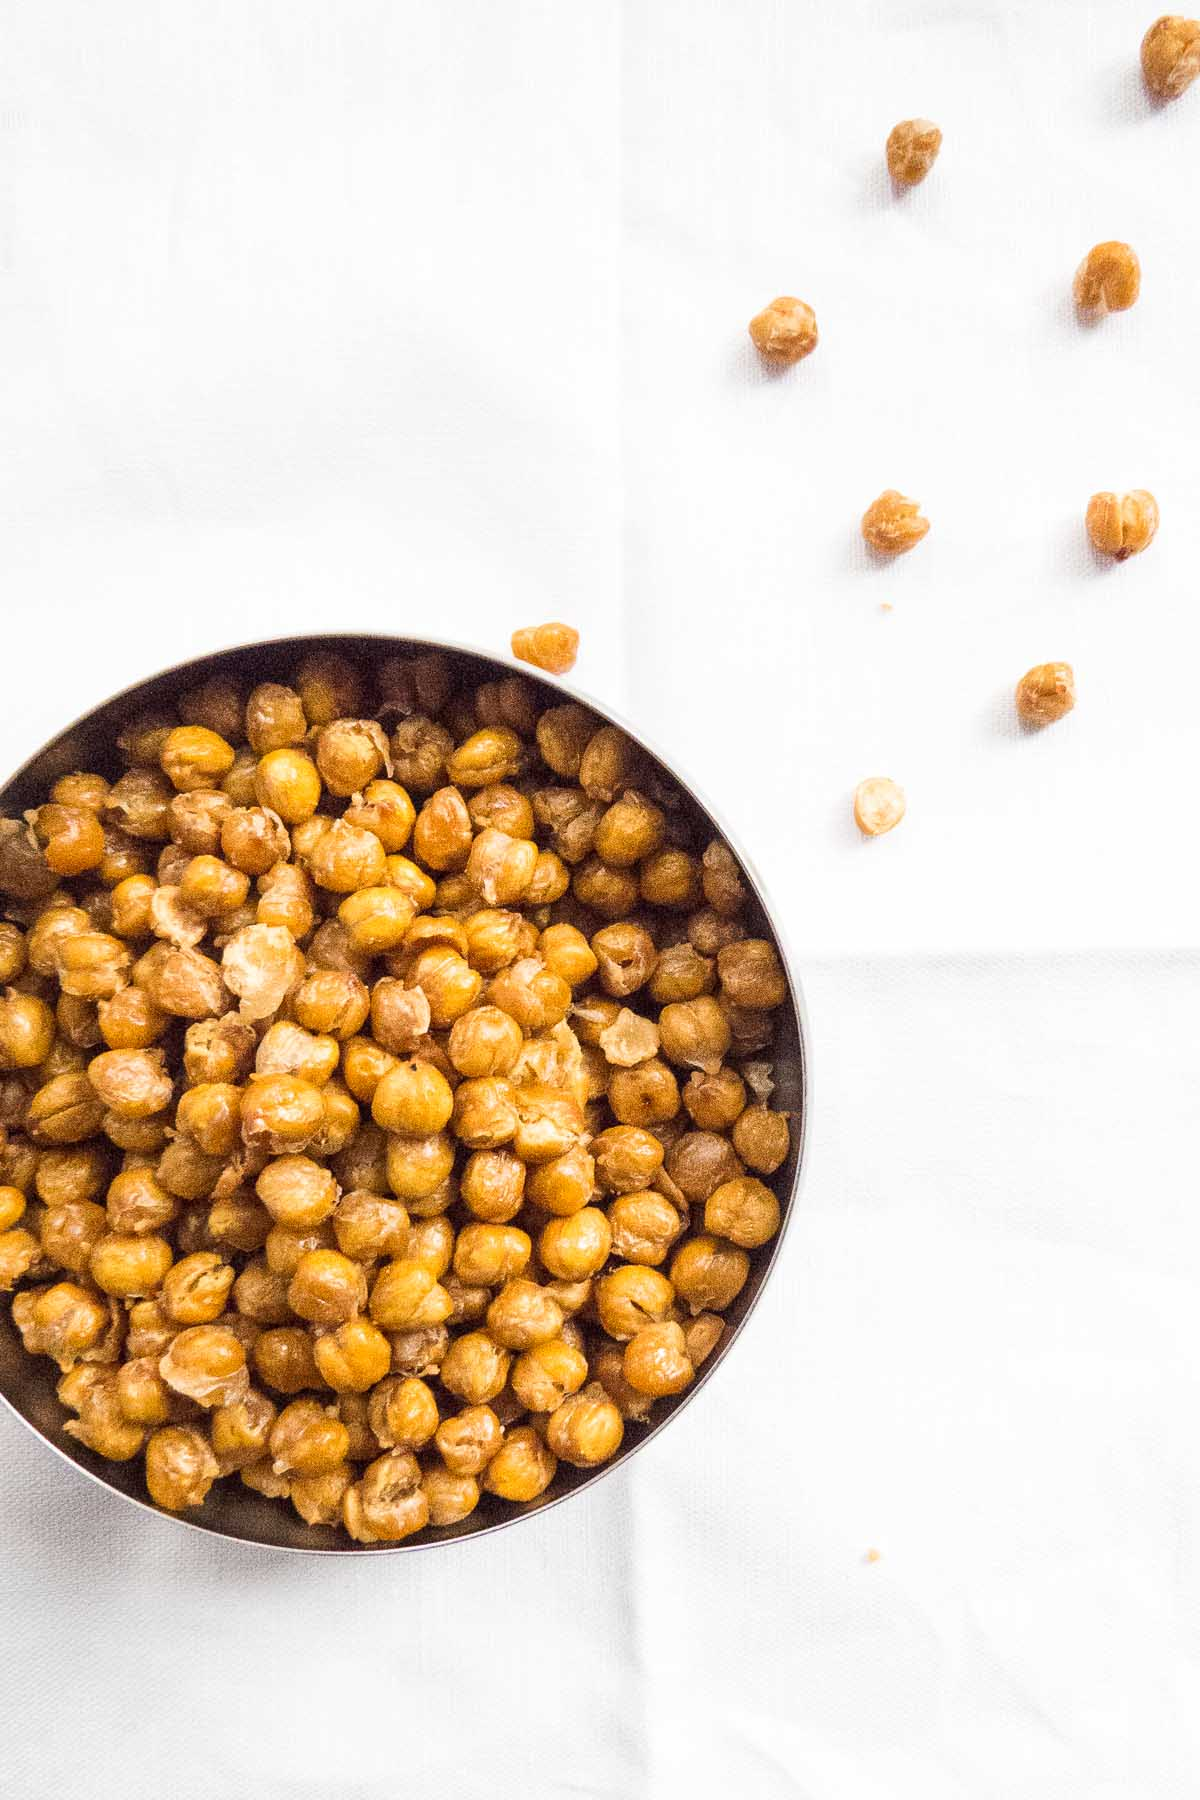 Snack recipes that help you sleep better: Crunchy Salted Roasted Chickpeas | The Beader Chef